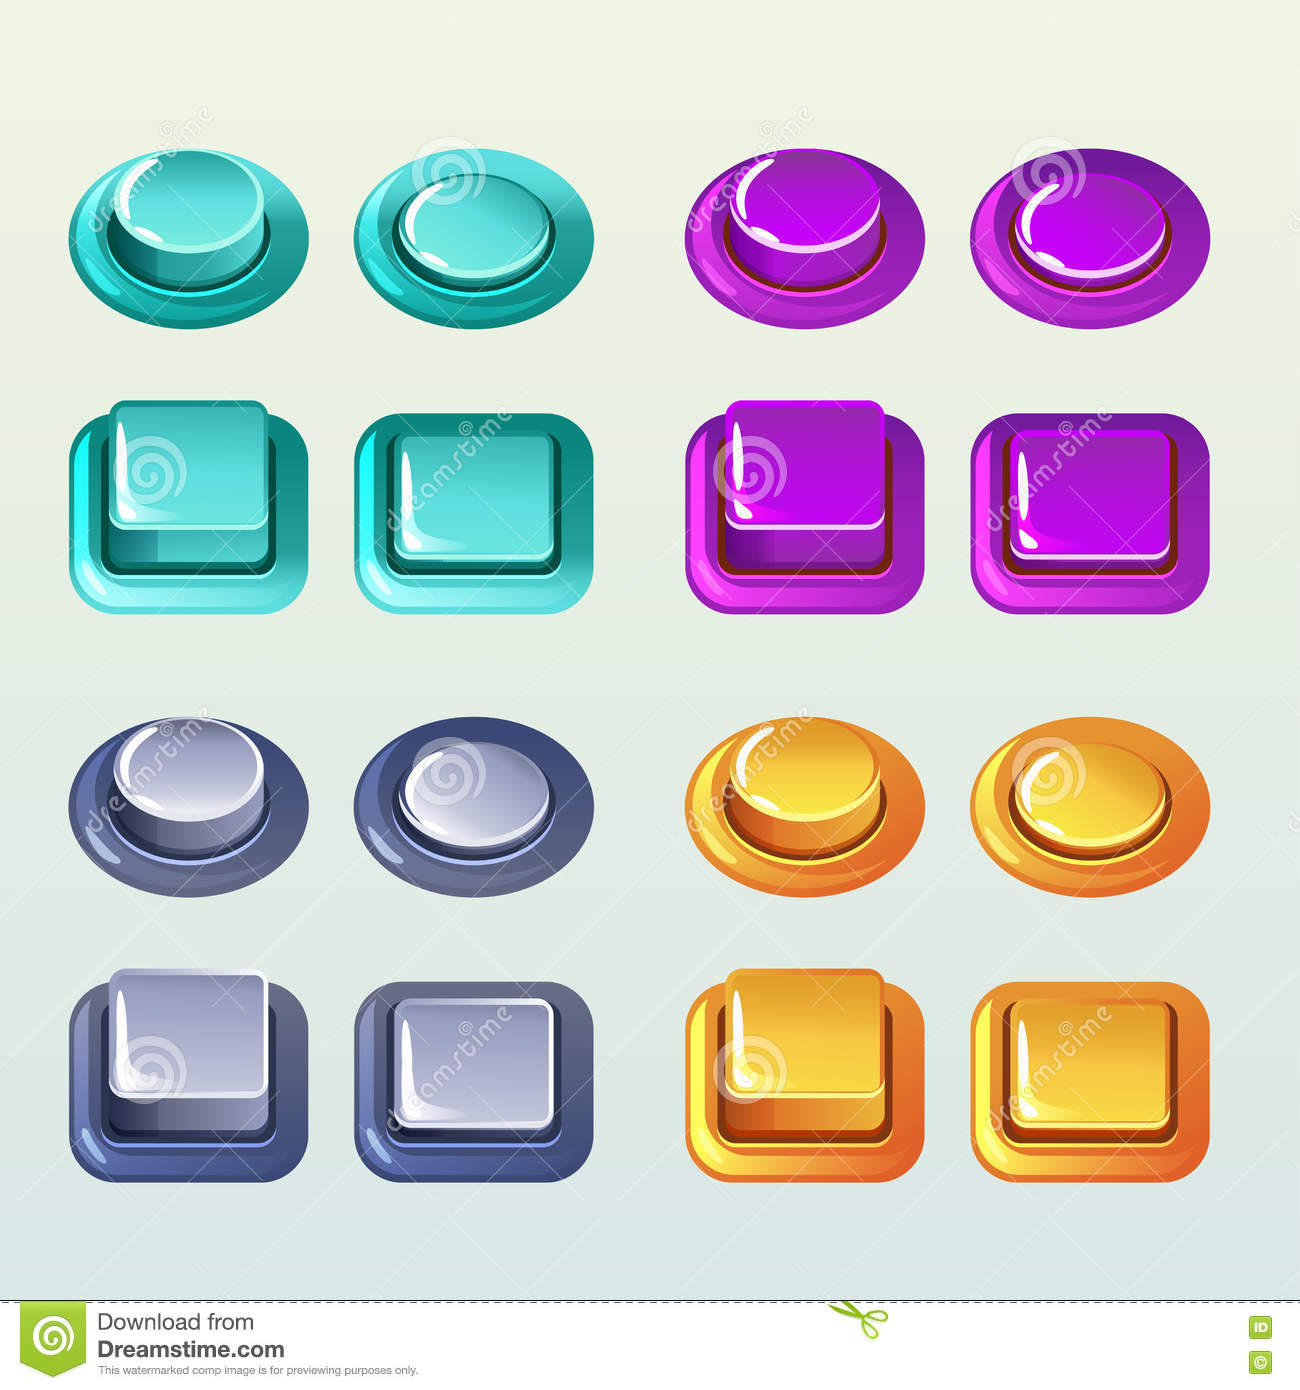 Push Buttons For A Game Or Web Design Element, Set2